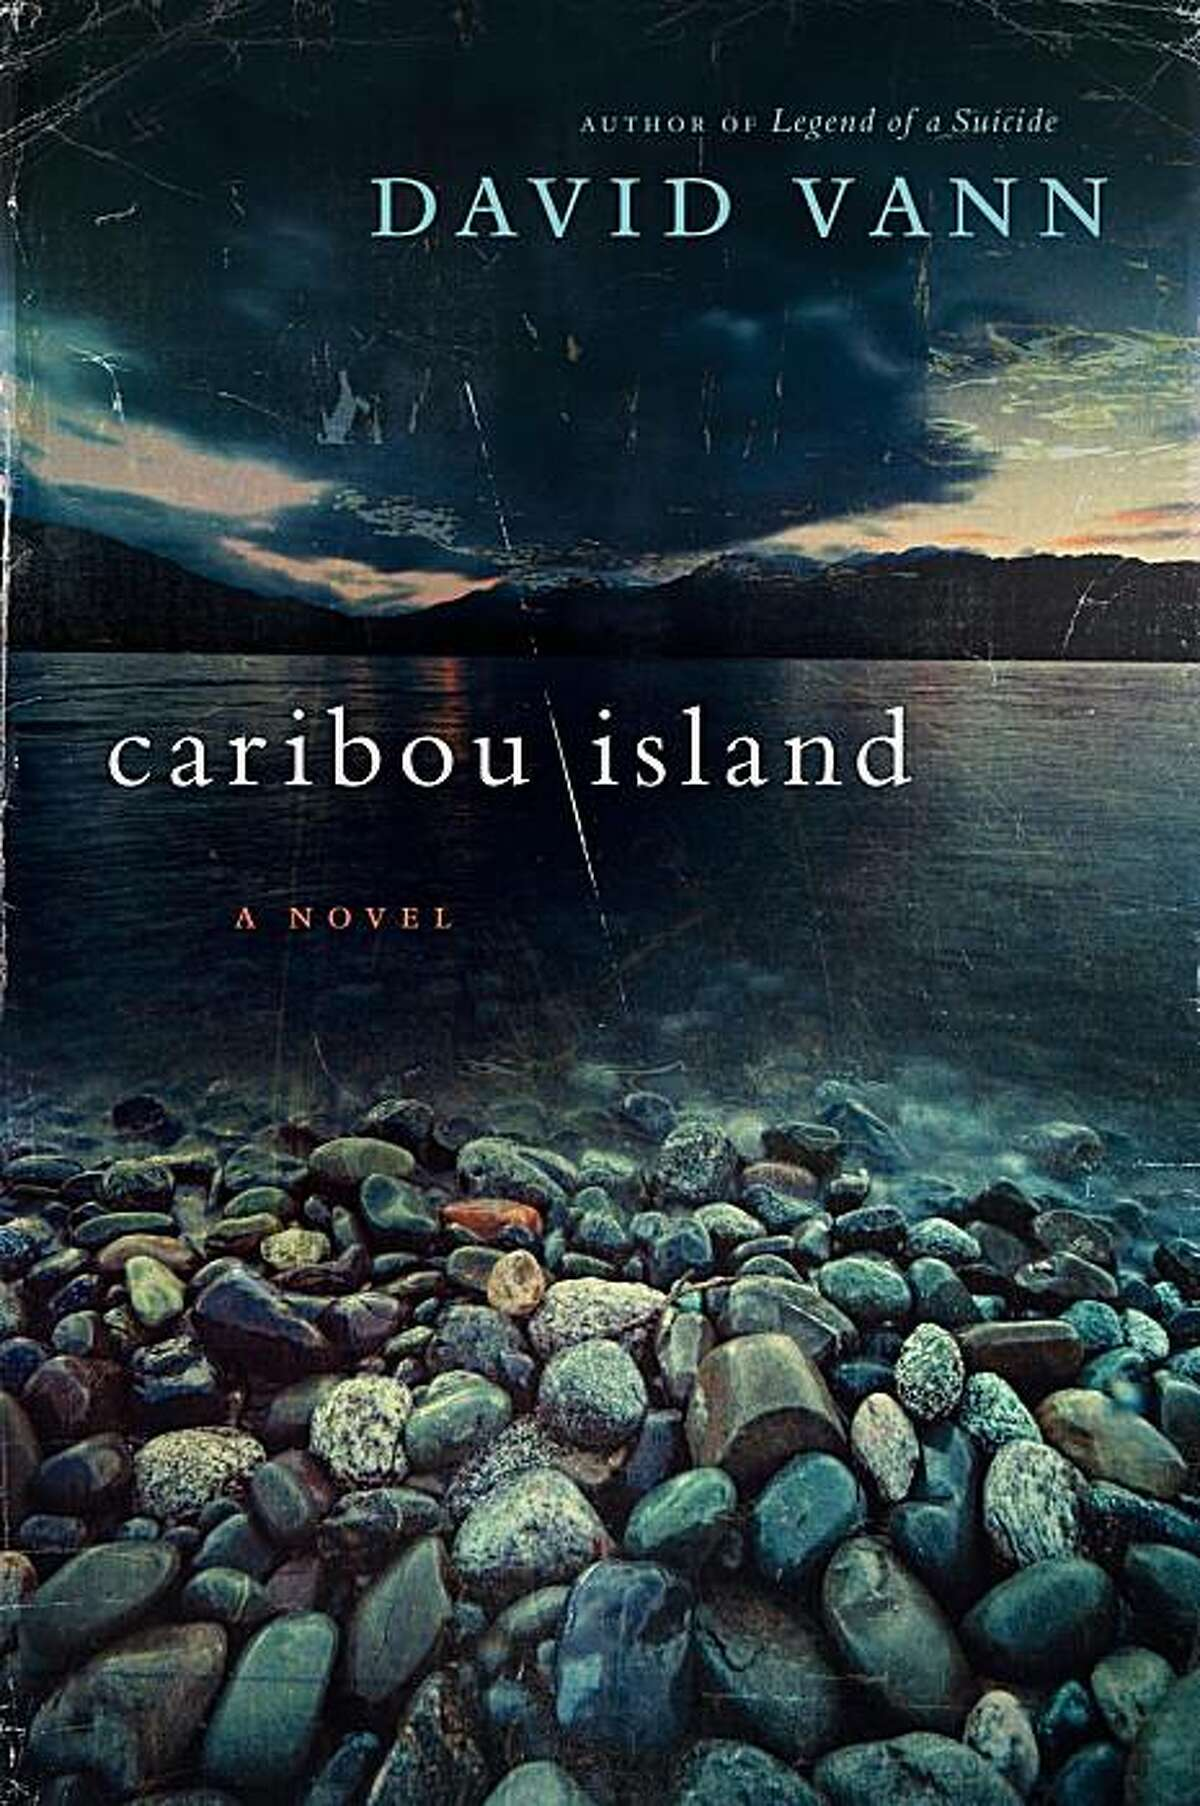 """In this book cover image released by Harper, """"Caribou Island"""" by David Vann is shown."""